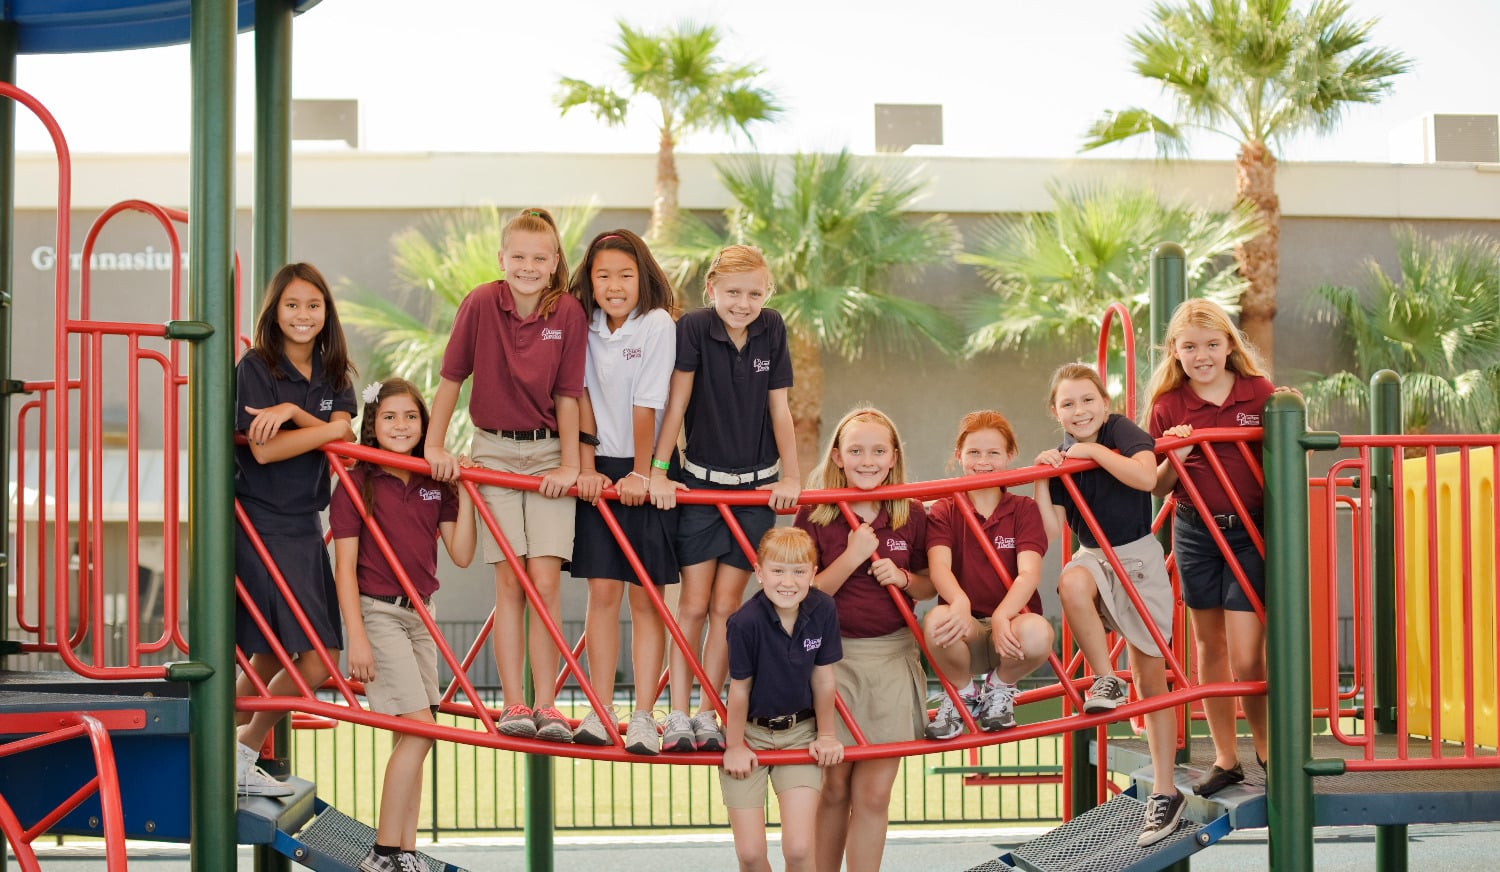 LVDS Students on Playground